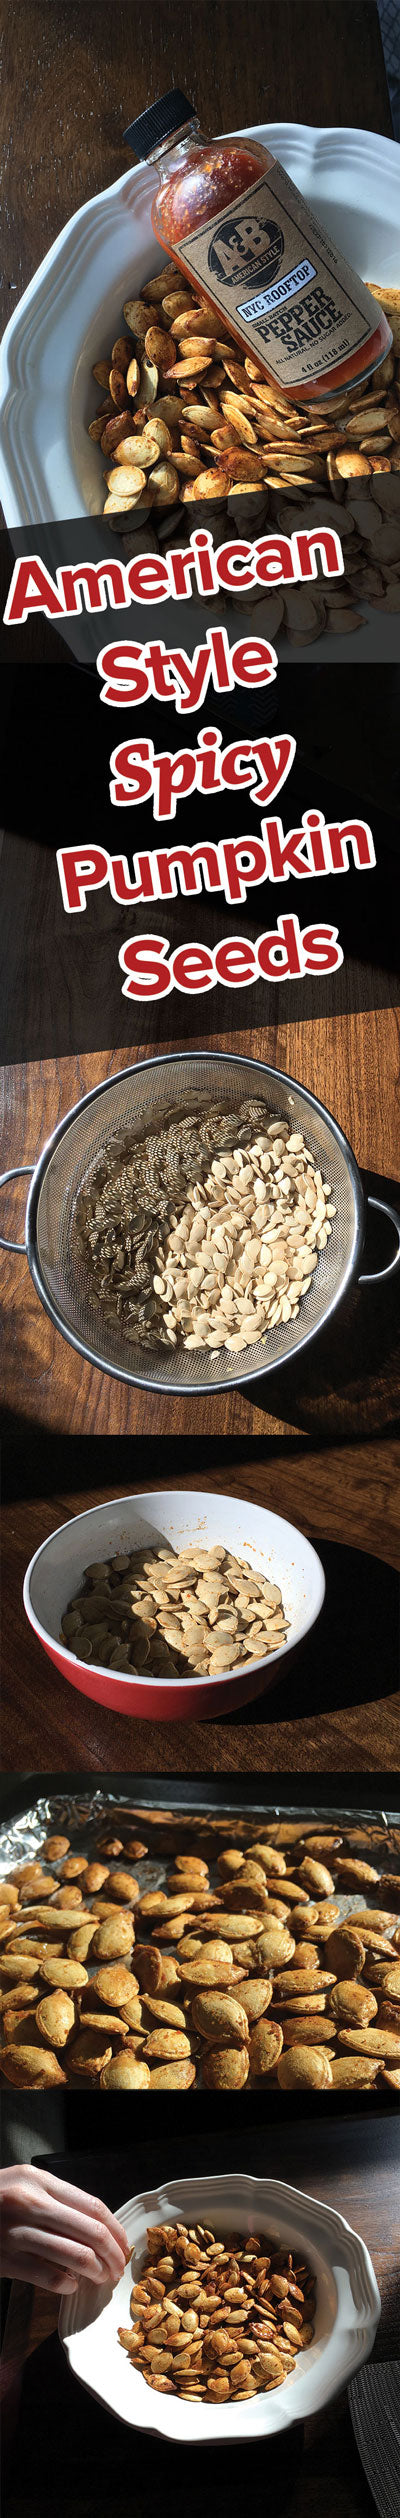 American Style Spicy Pumpkin Seeds